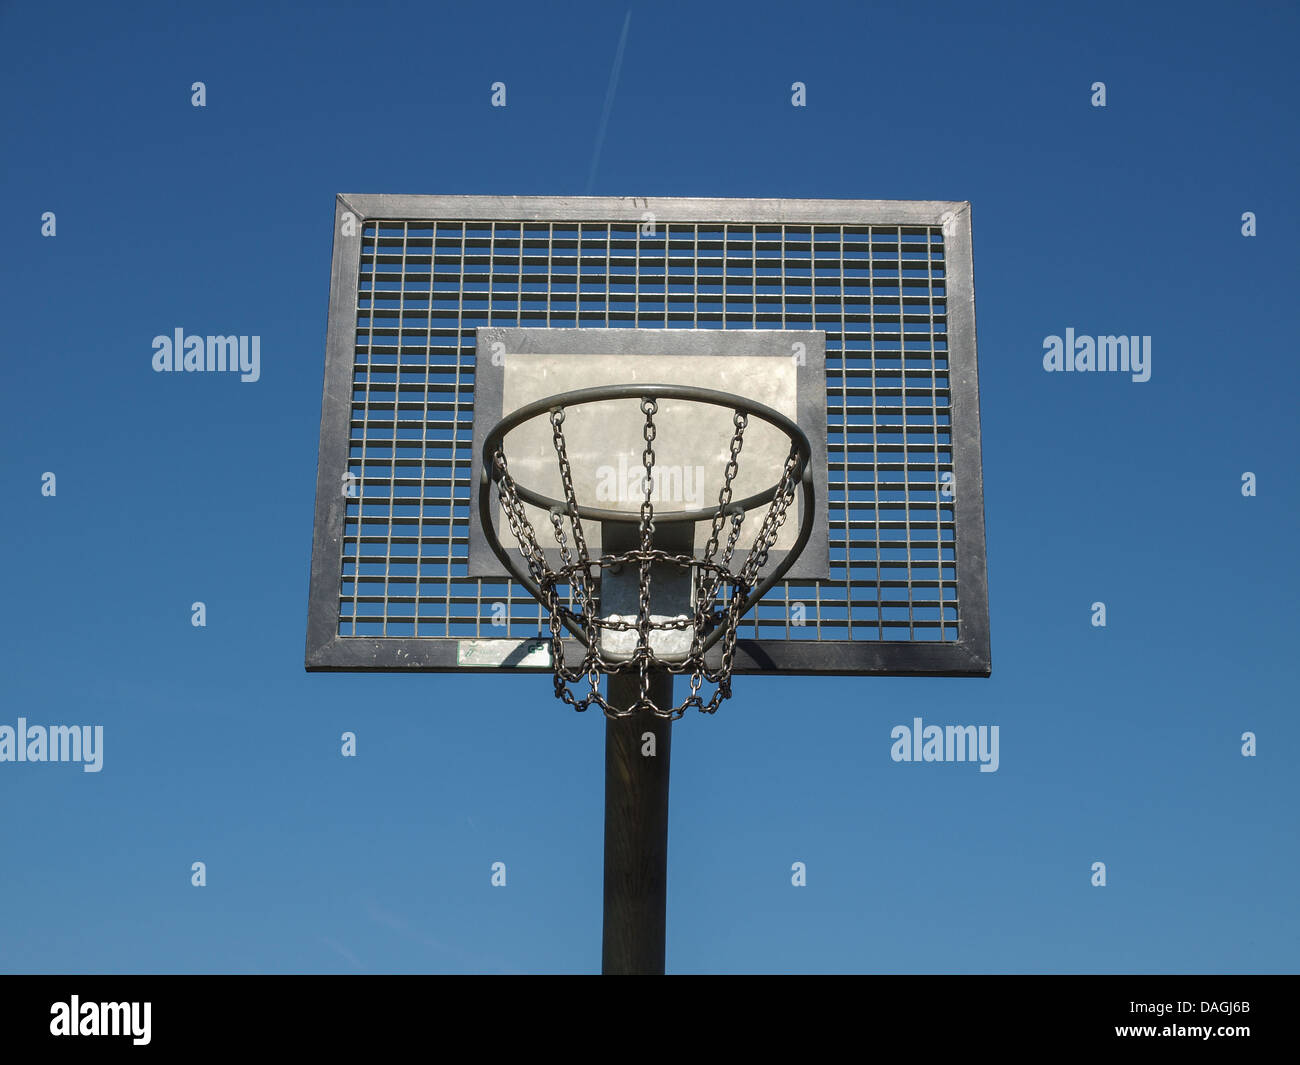 Basket used in playgrounds for basketball game sport Stock Photo